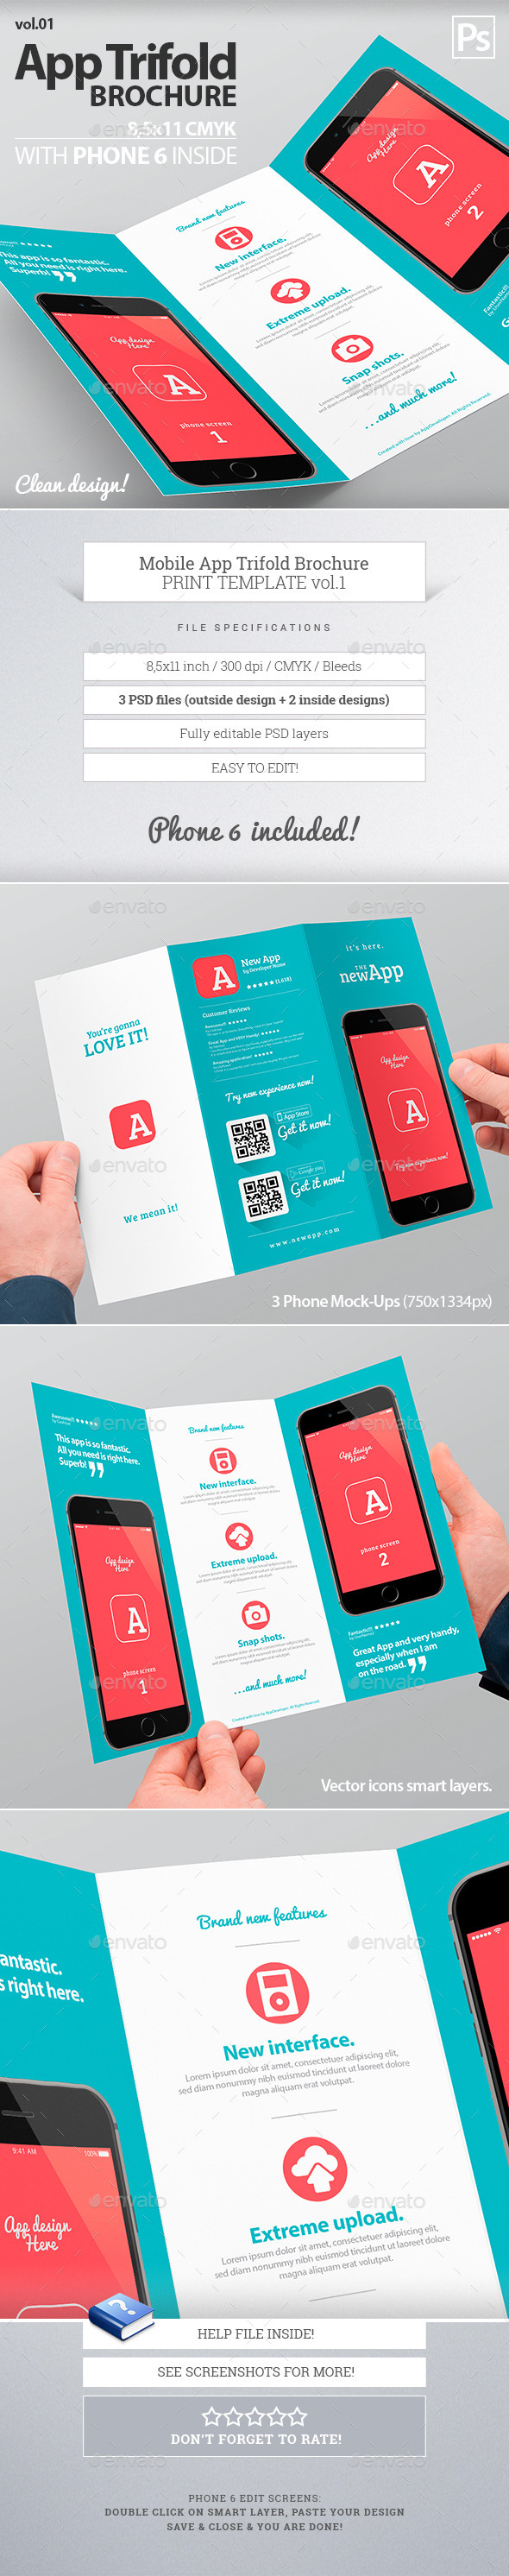 Mobile App Trifold Brochure vol.1 - Brochures Print Templates